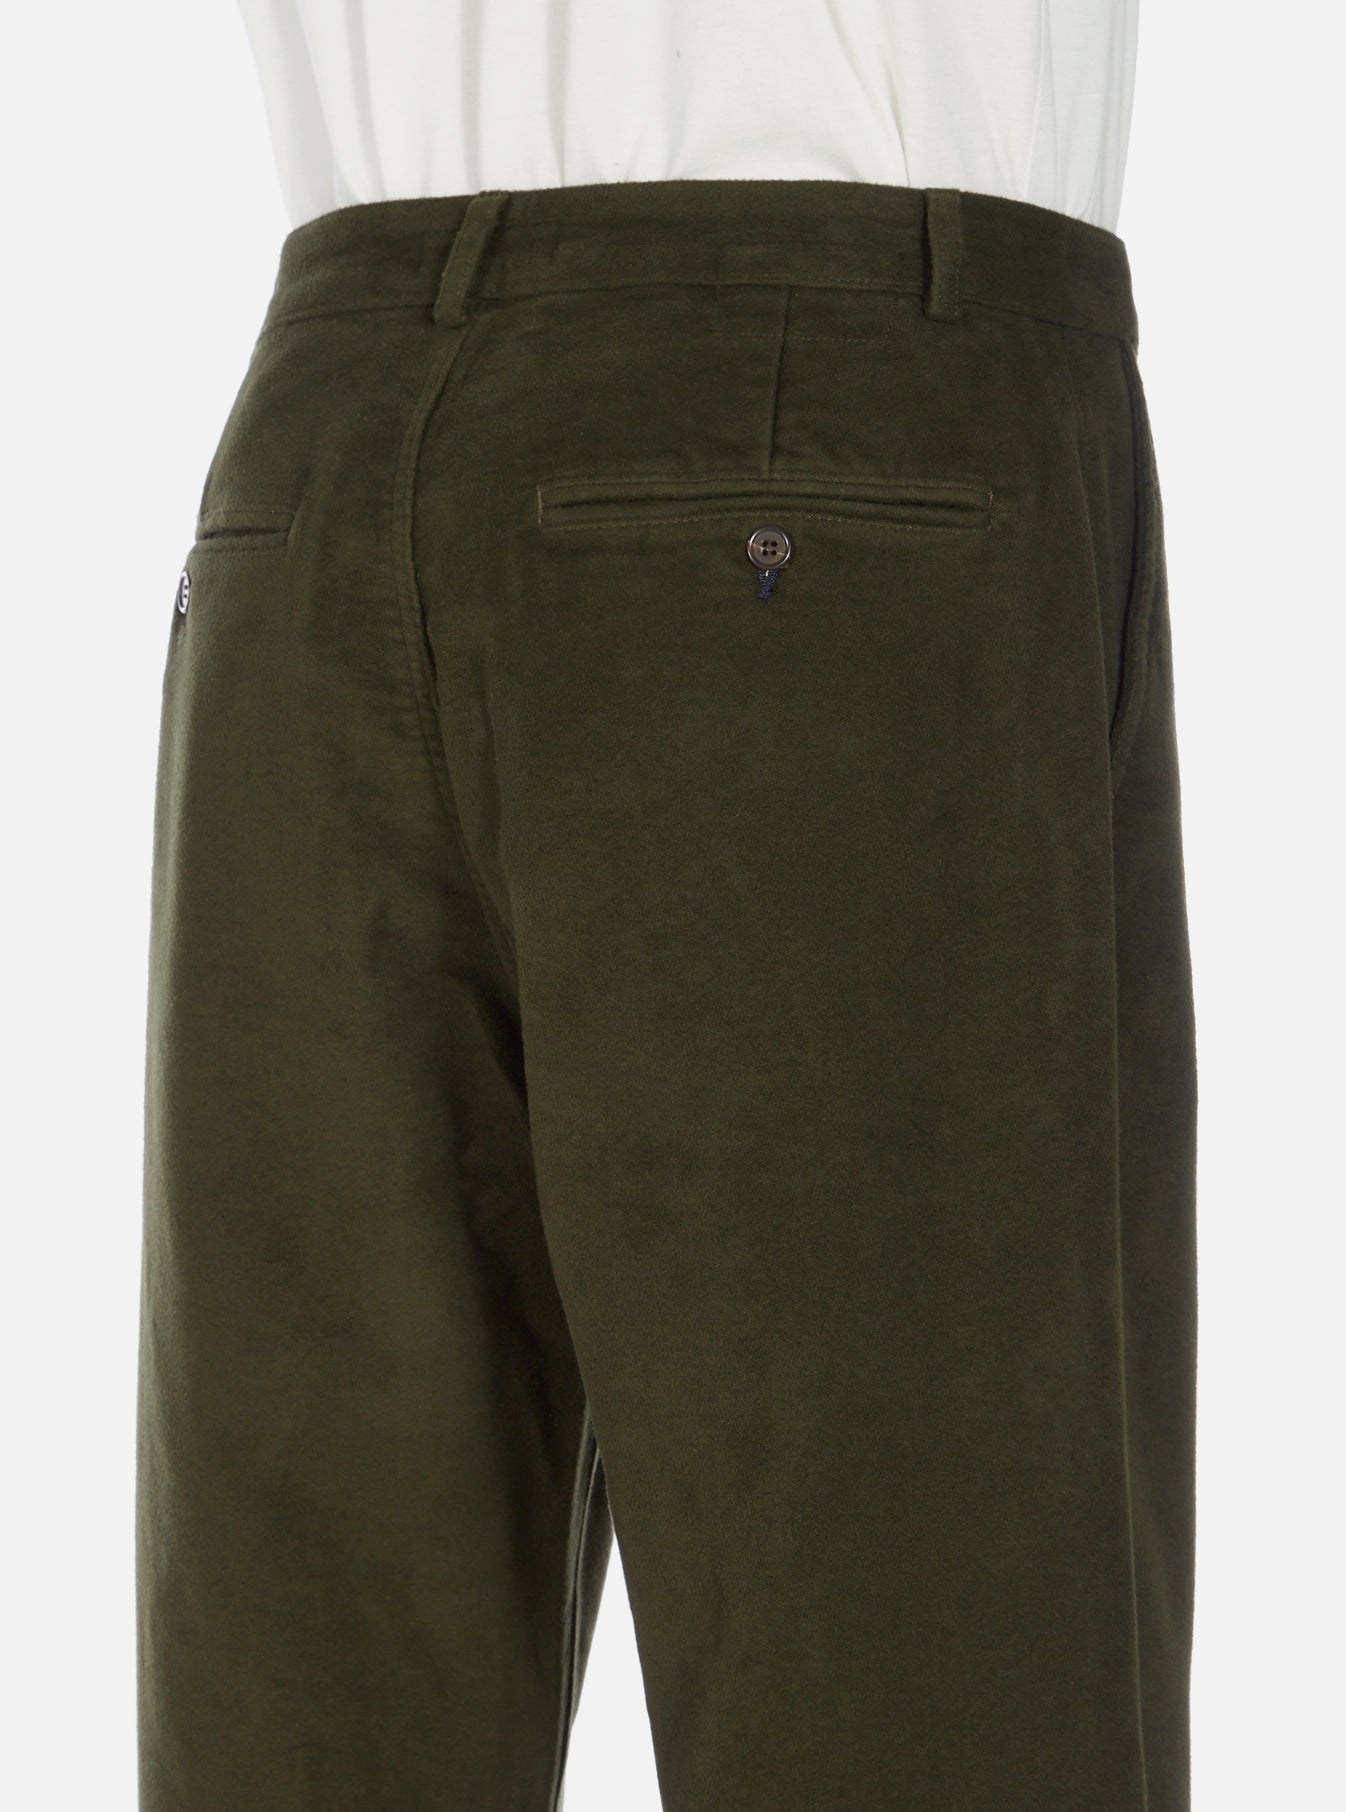 Universal Works Military Chino in Olive Moleskin